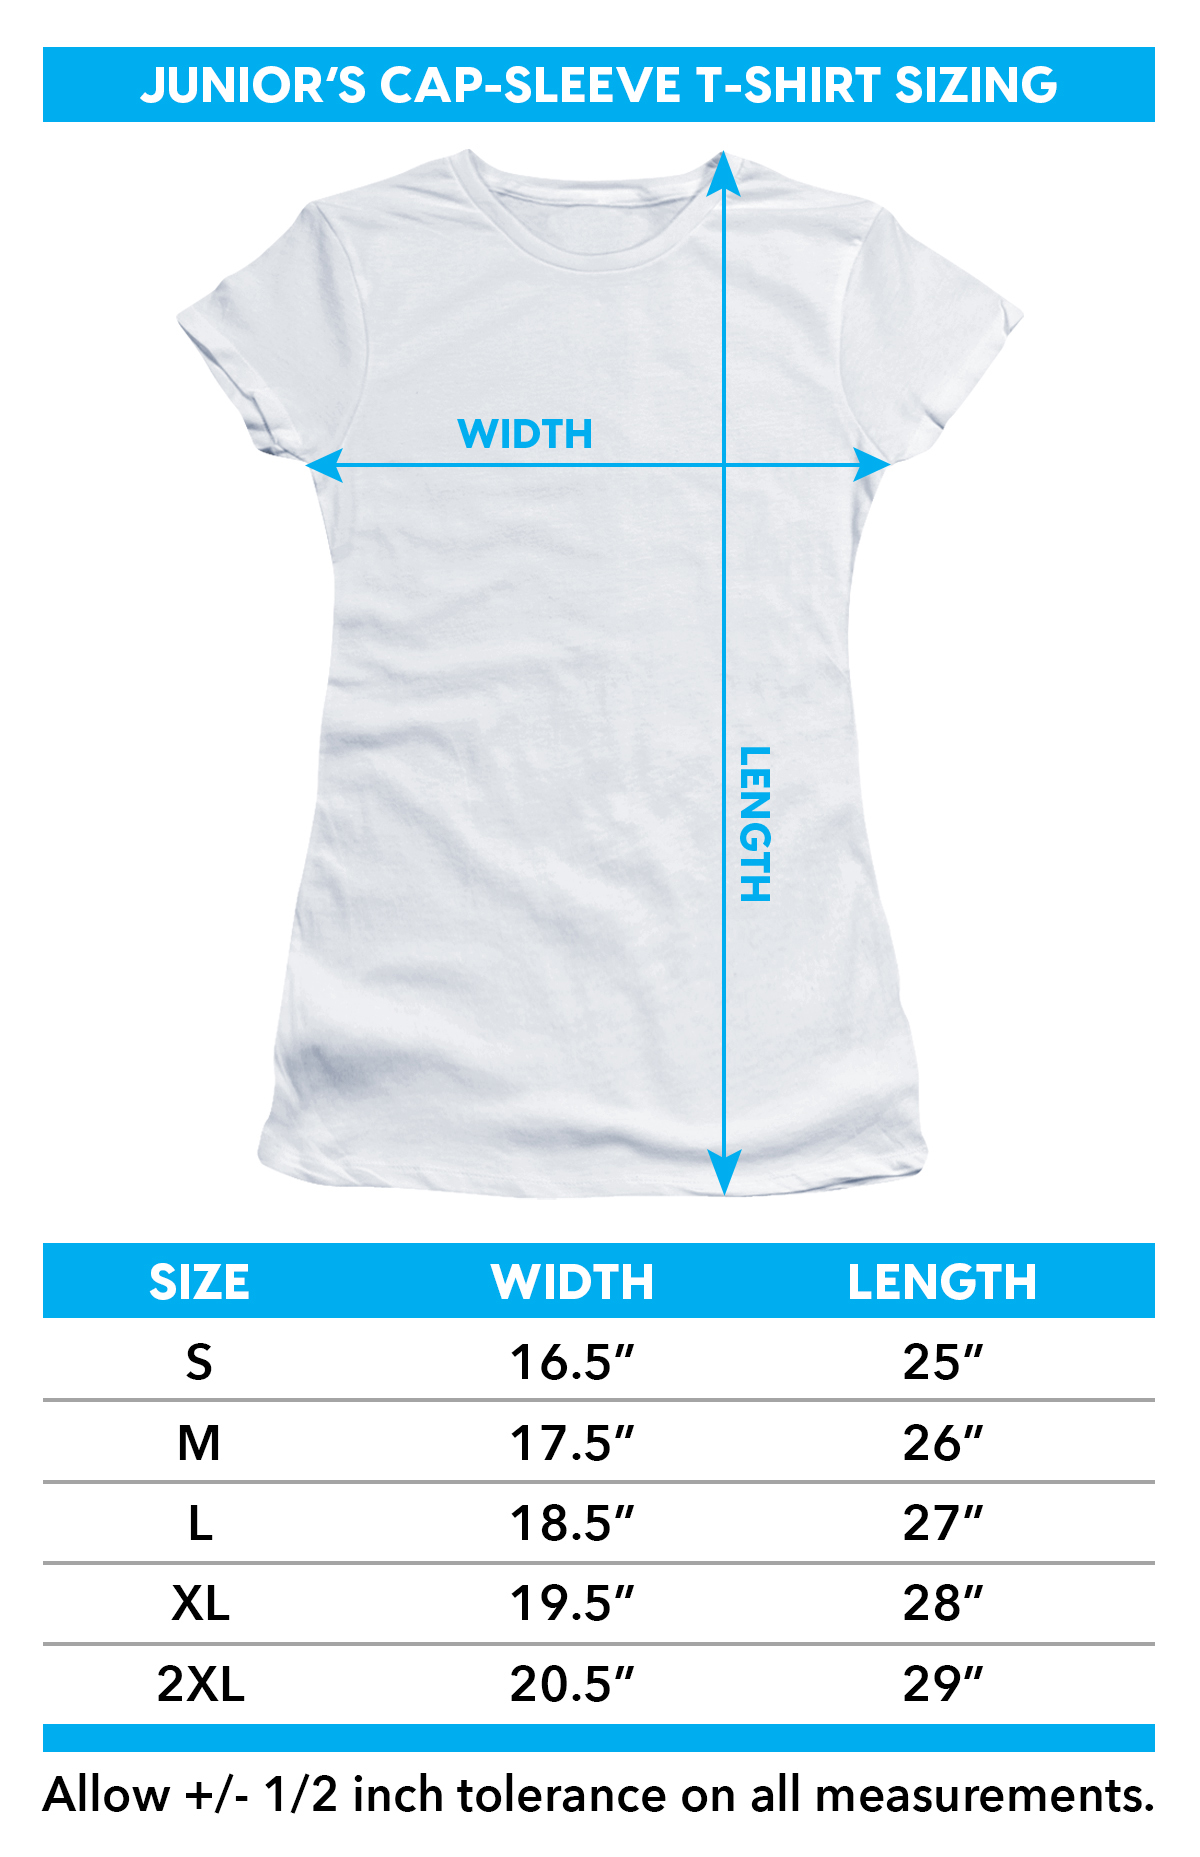 Girls sizing chart for Clueless Girls T-Shirt - TRV-PAR716-JS